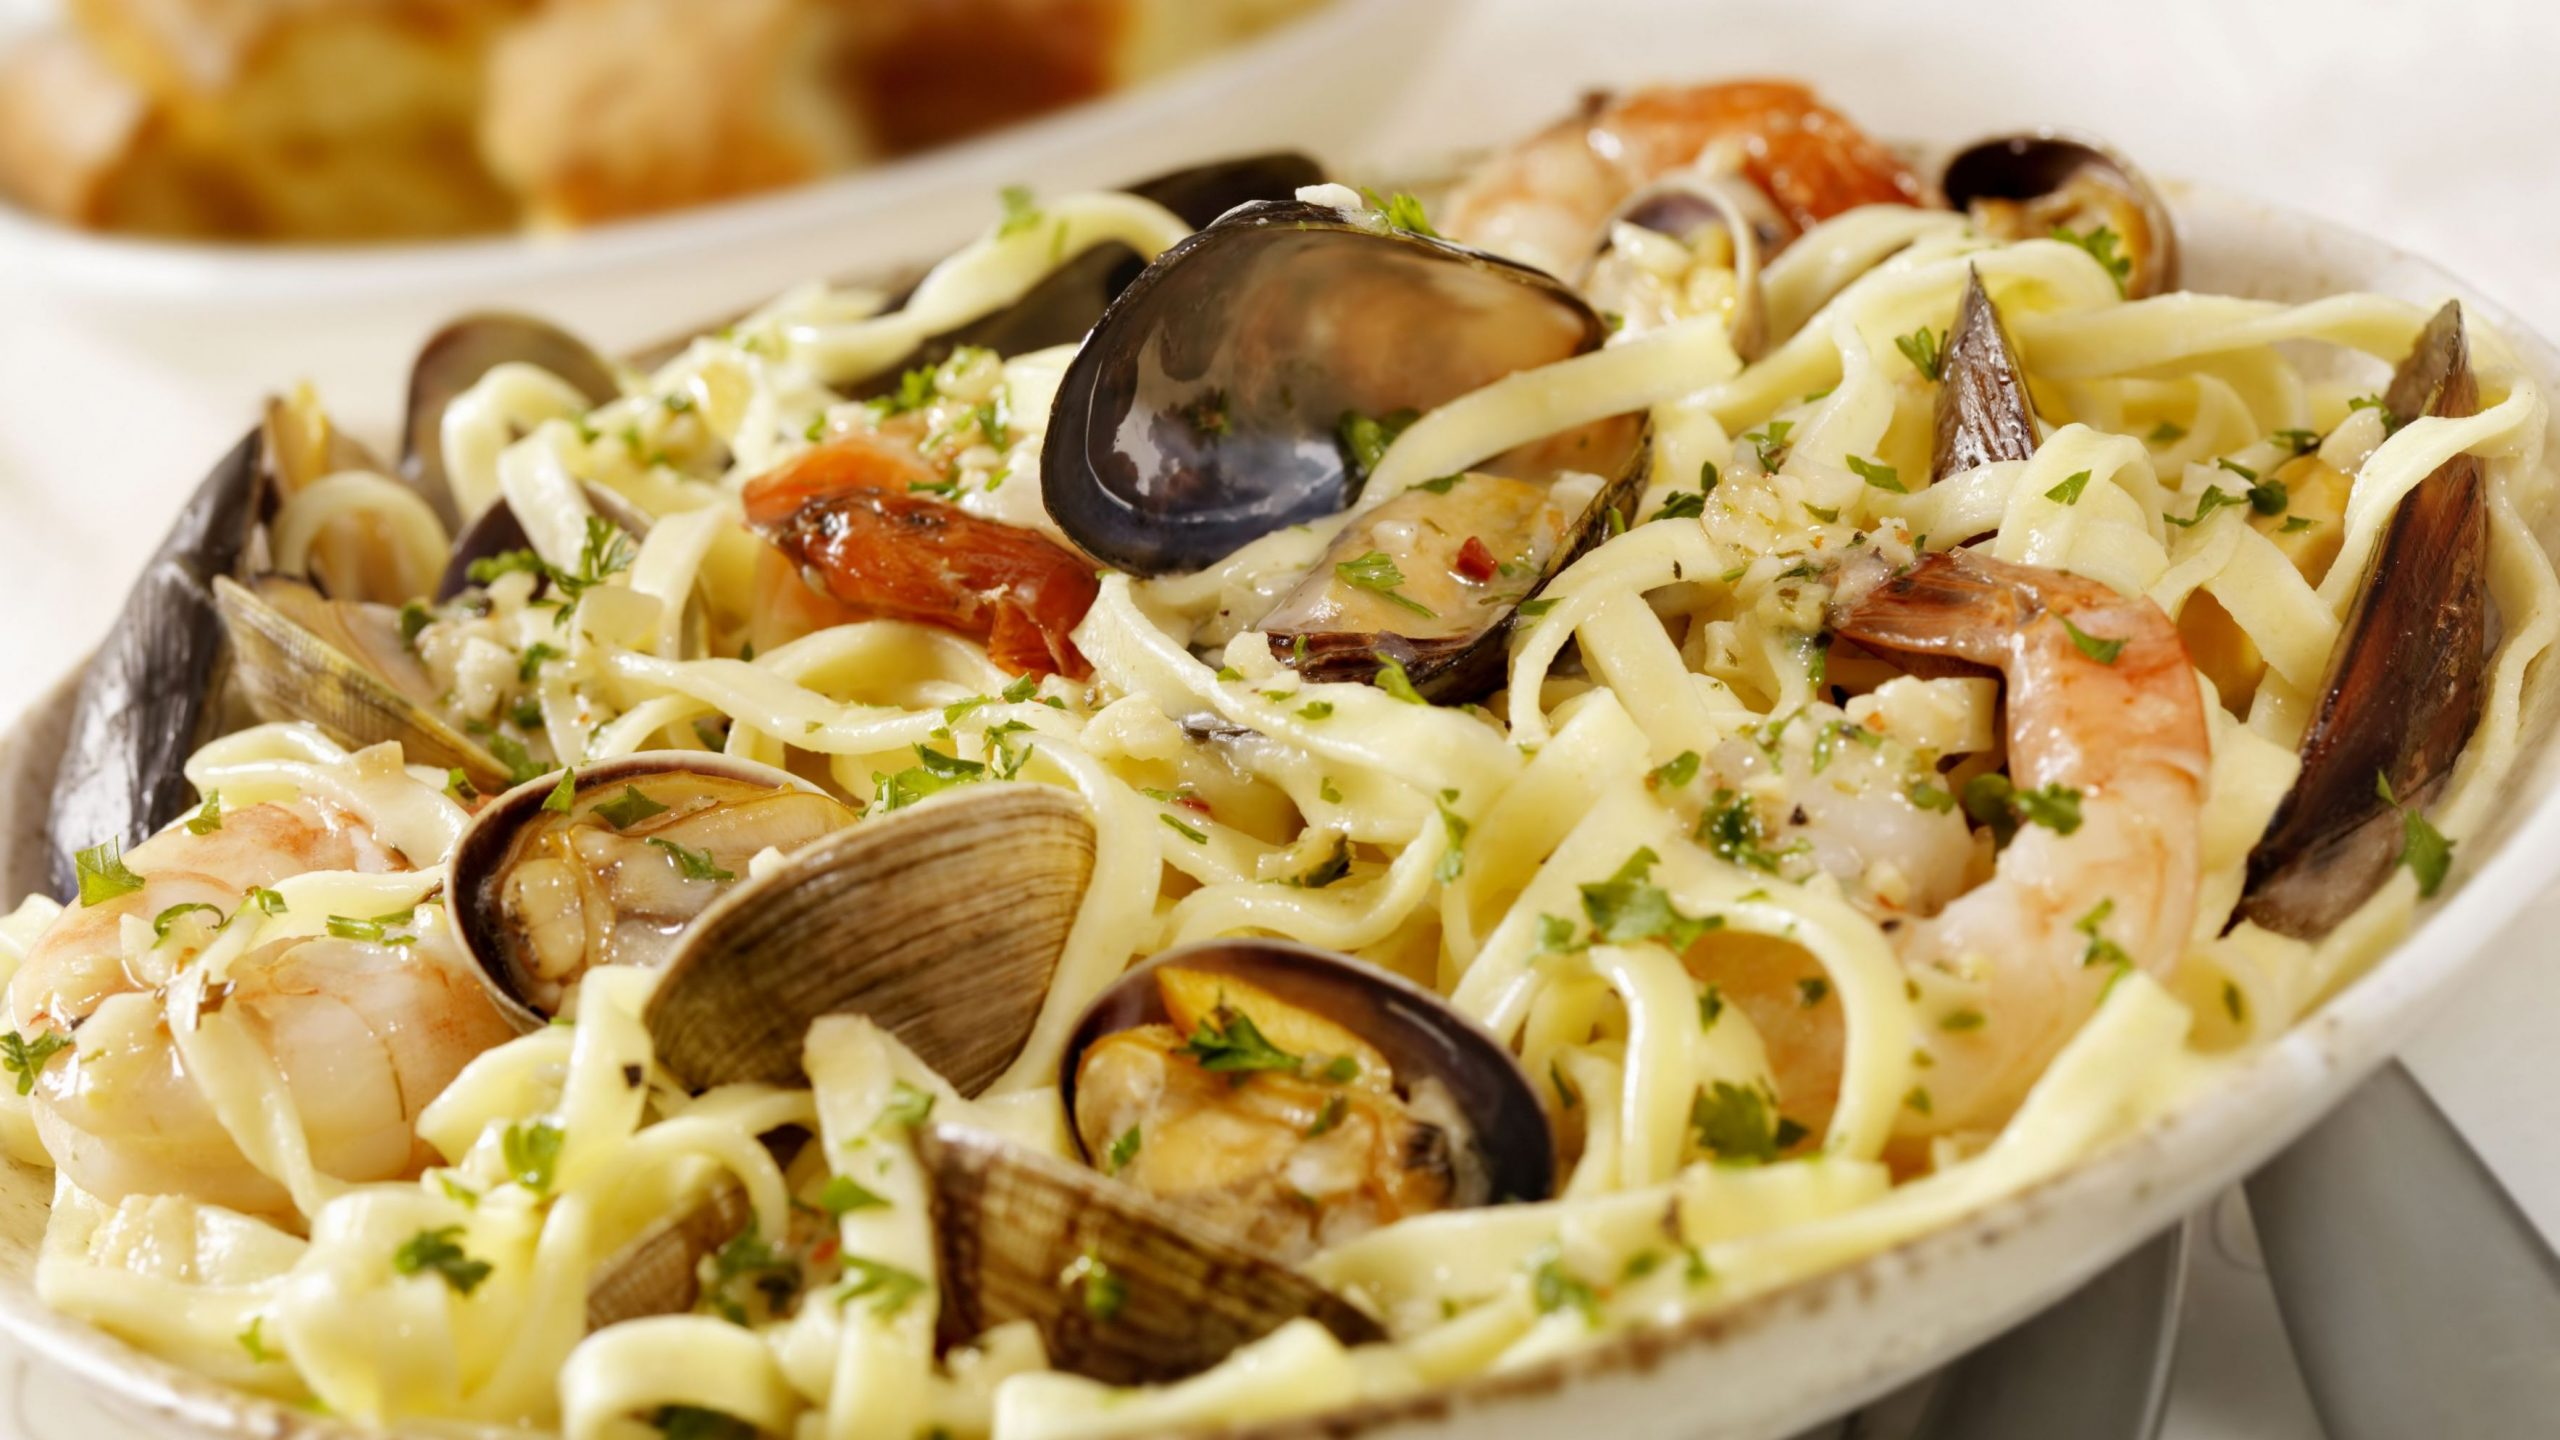 Pasta With Mixed Seafood (Pasta alla Posillipo)